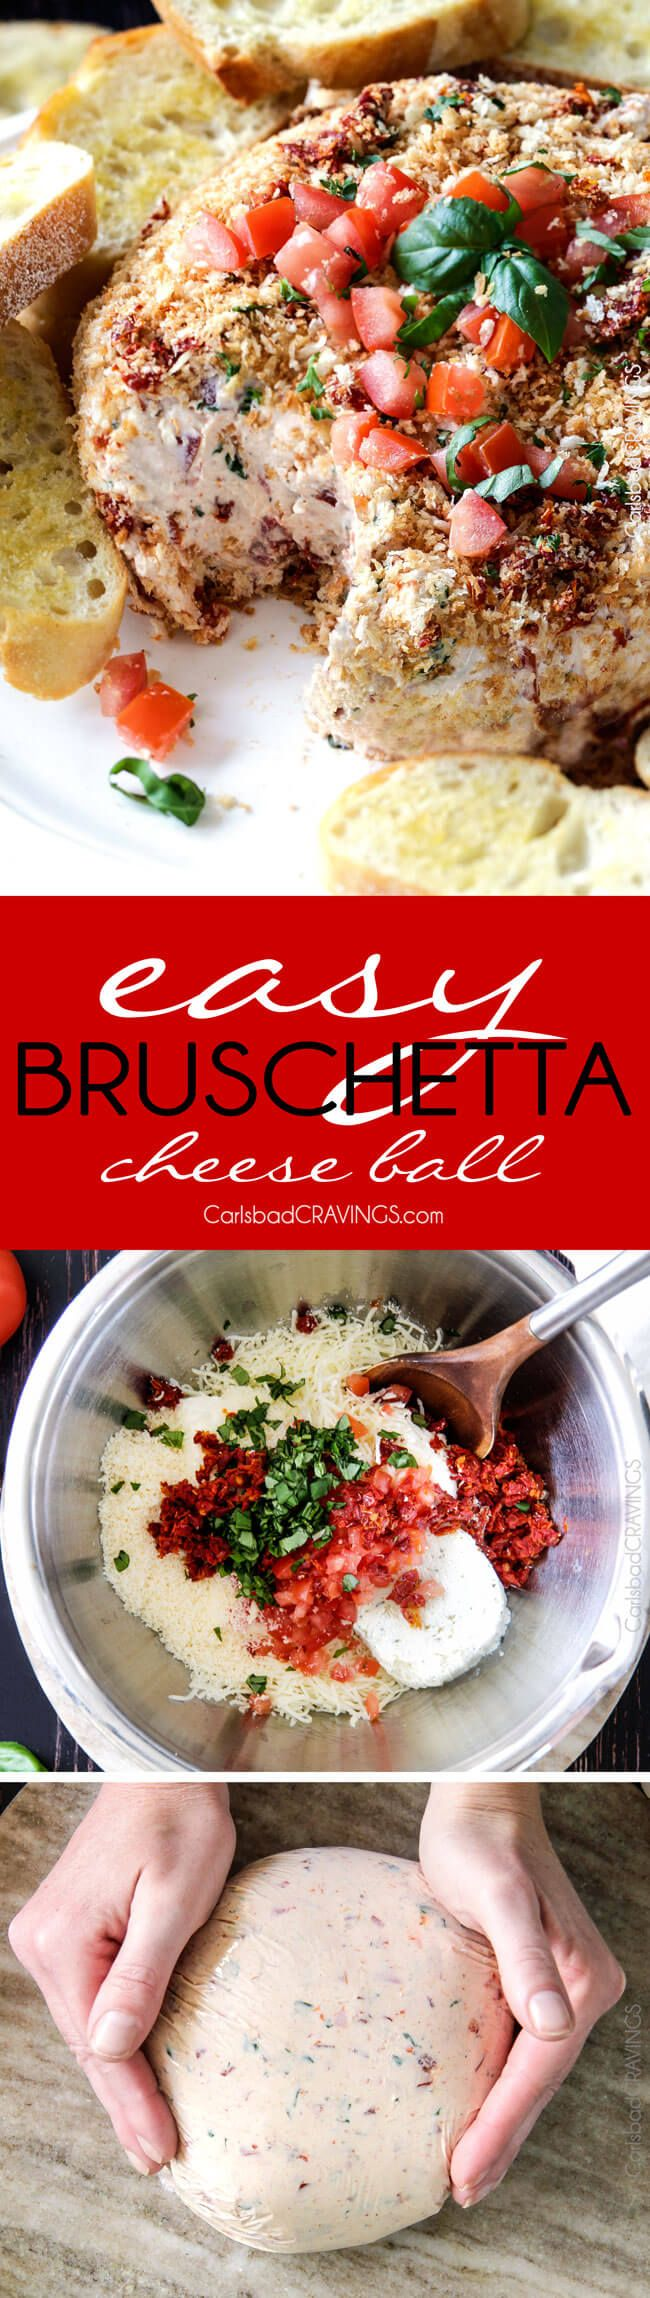 Super easy Bruschetta Cheese Ball takes just minutes to whip up and is always a total show stopper, make ahead appetizer! Loaded with fresh tomatoes, sun-dried tomatoes, fresh basil and garlic and herb cream cheese then rolled in crispy panko breadcrumbs all served with toasted baguette slices! So irresistibly delicious!